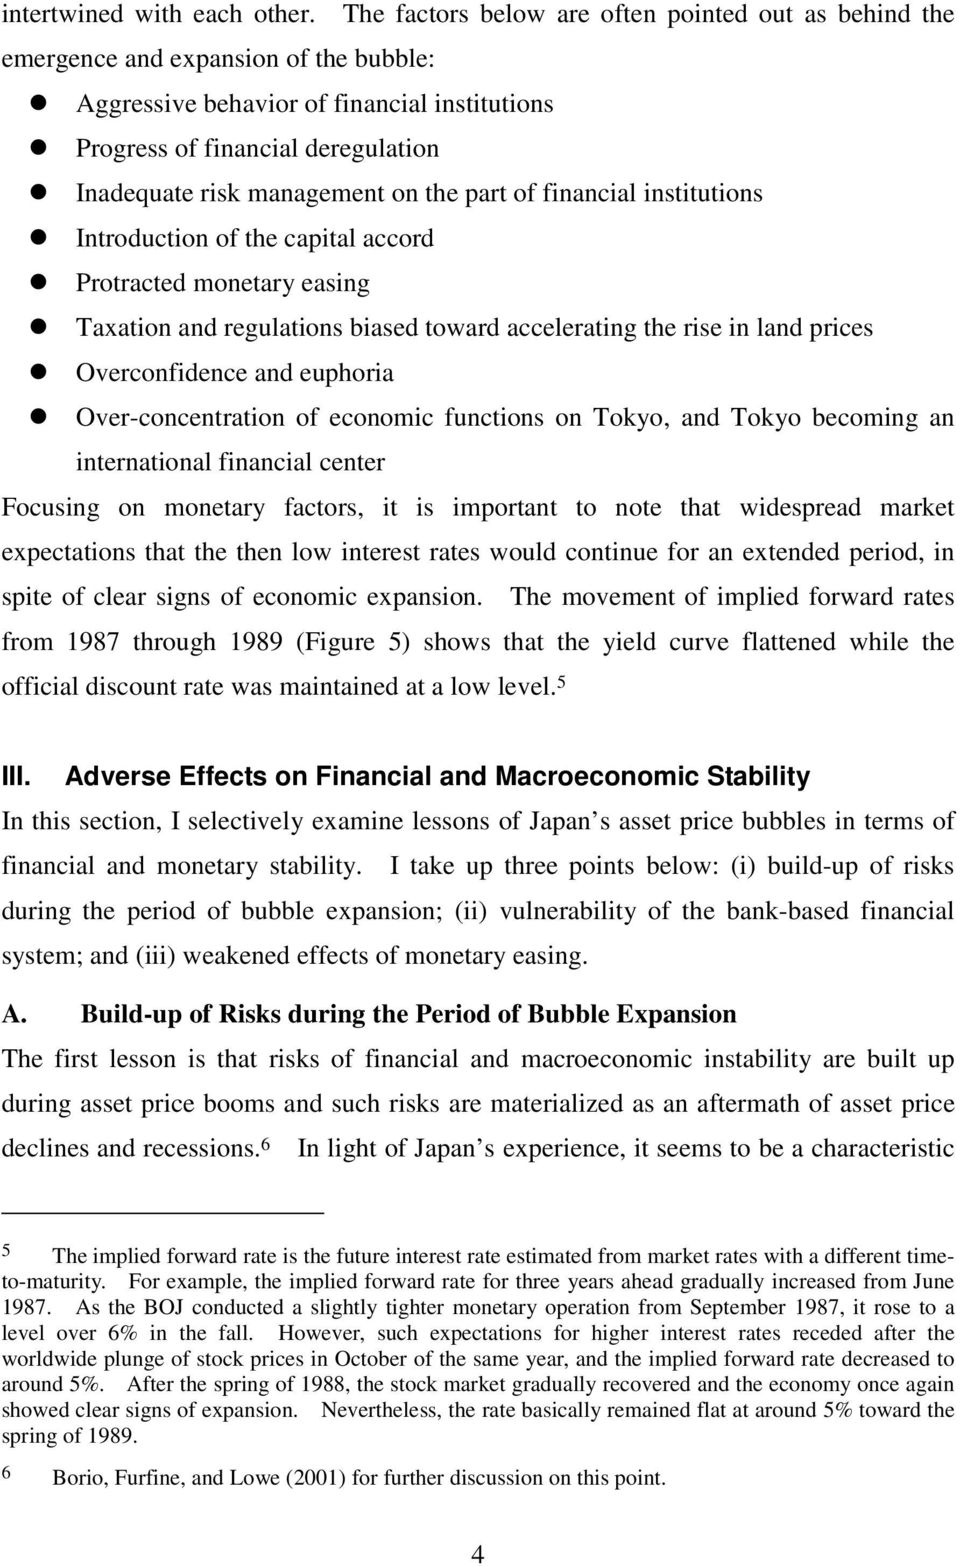 management on the part of financial institutions Introduction of the capital accord Protracted monetary easing Taxation and regulations biased toward accelerating the rise in land prices